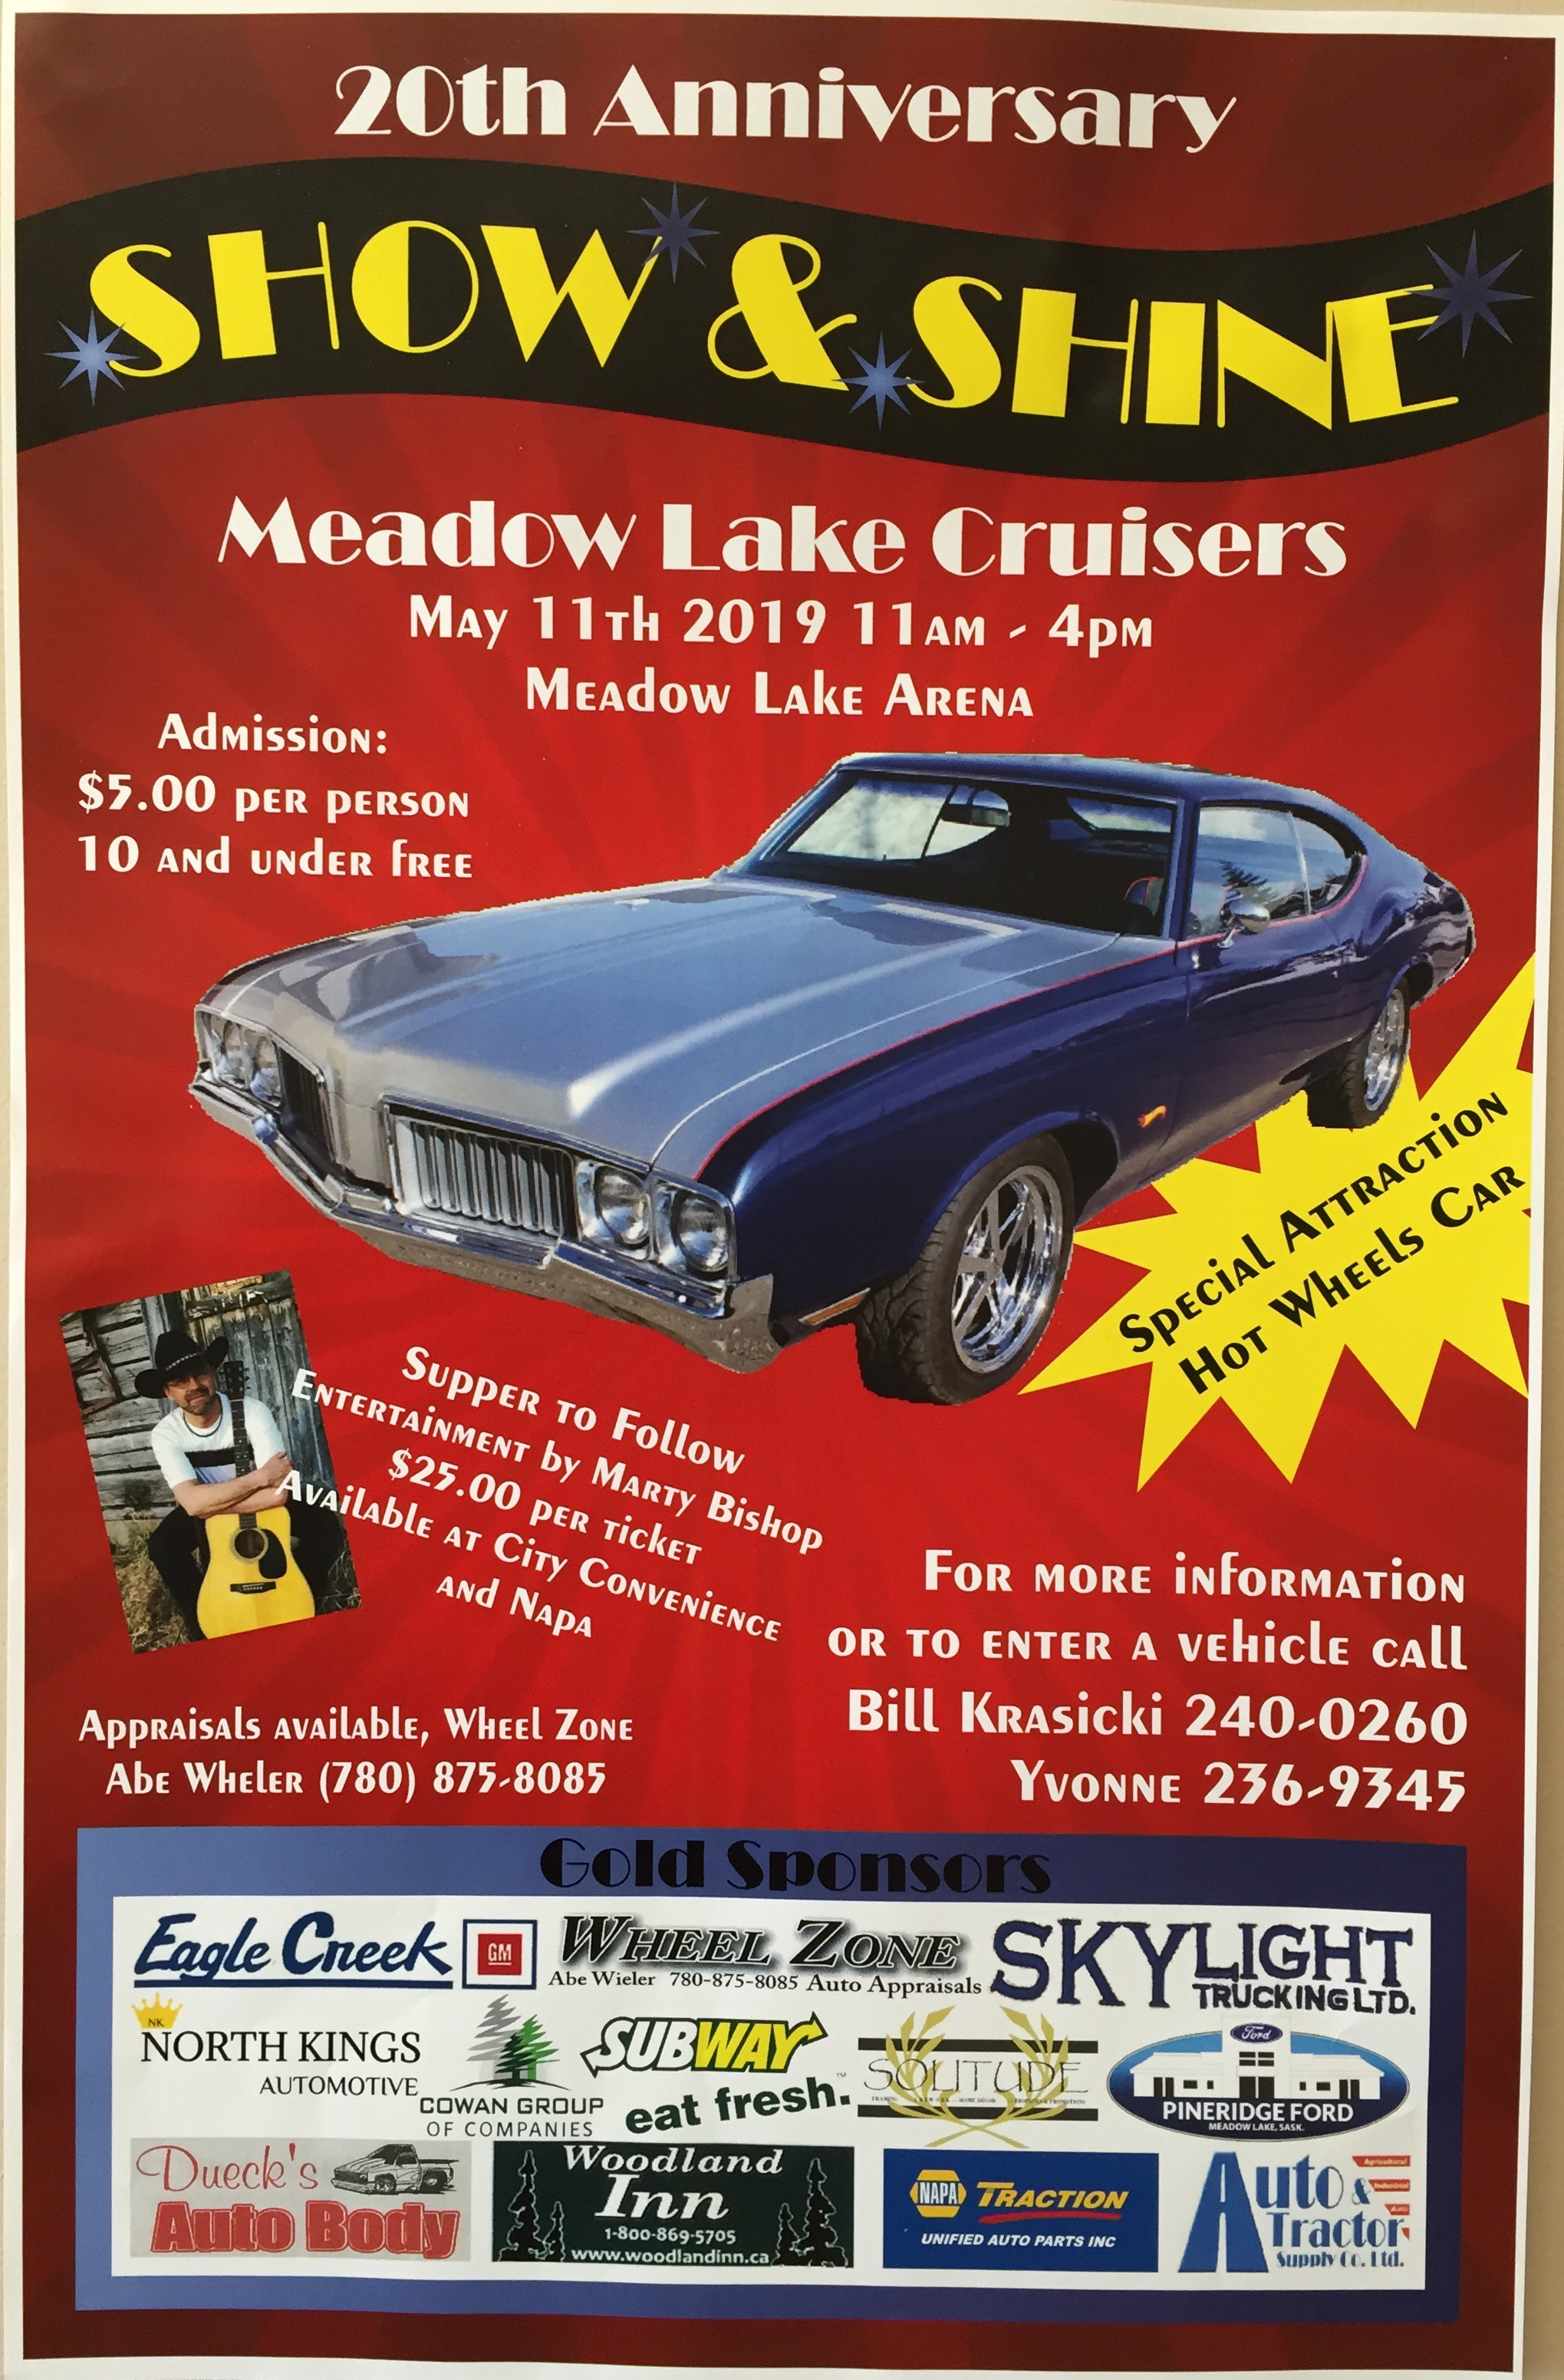 Meadow Lake Cruisers Show and Shine | battlefordsNOW | North